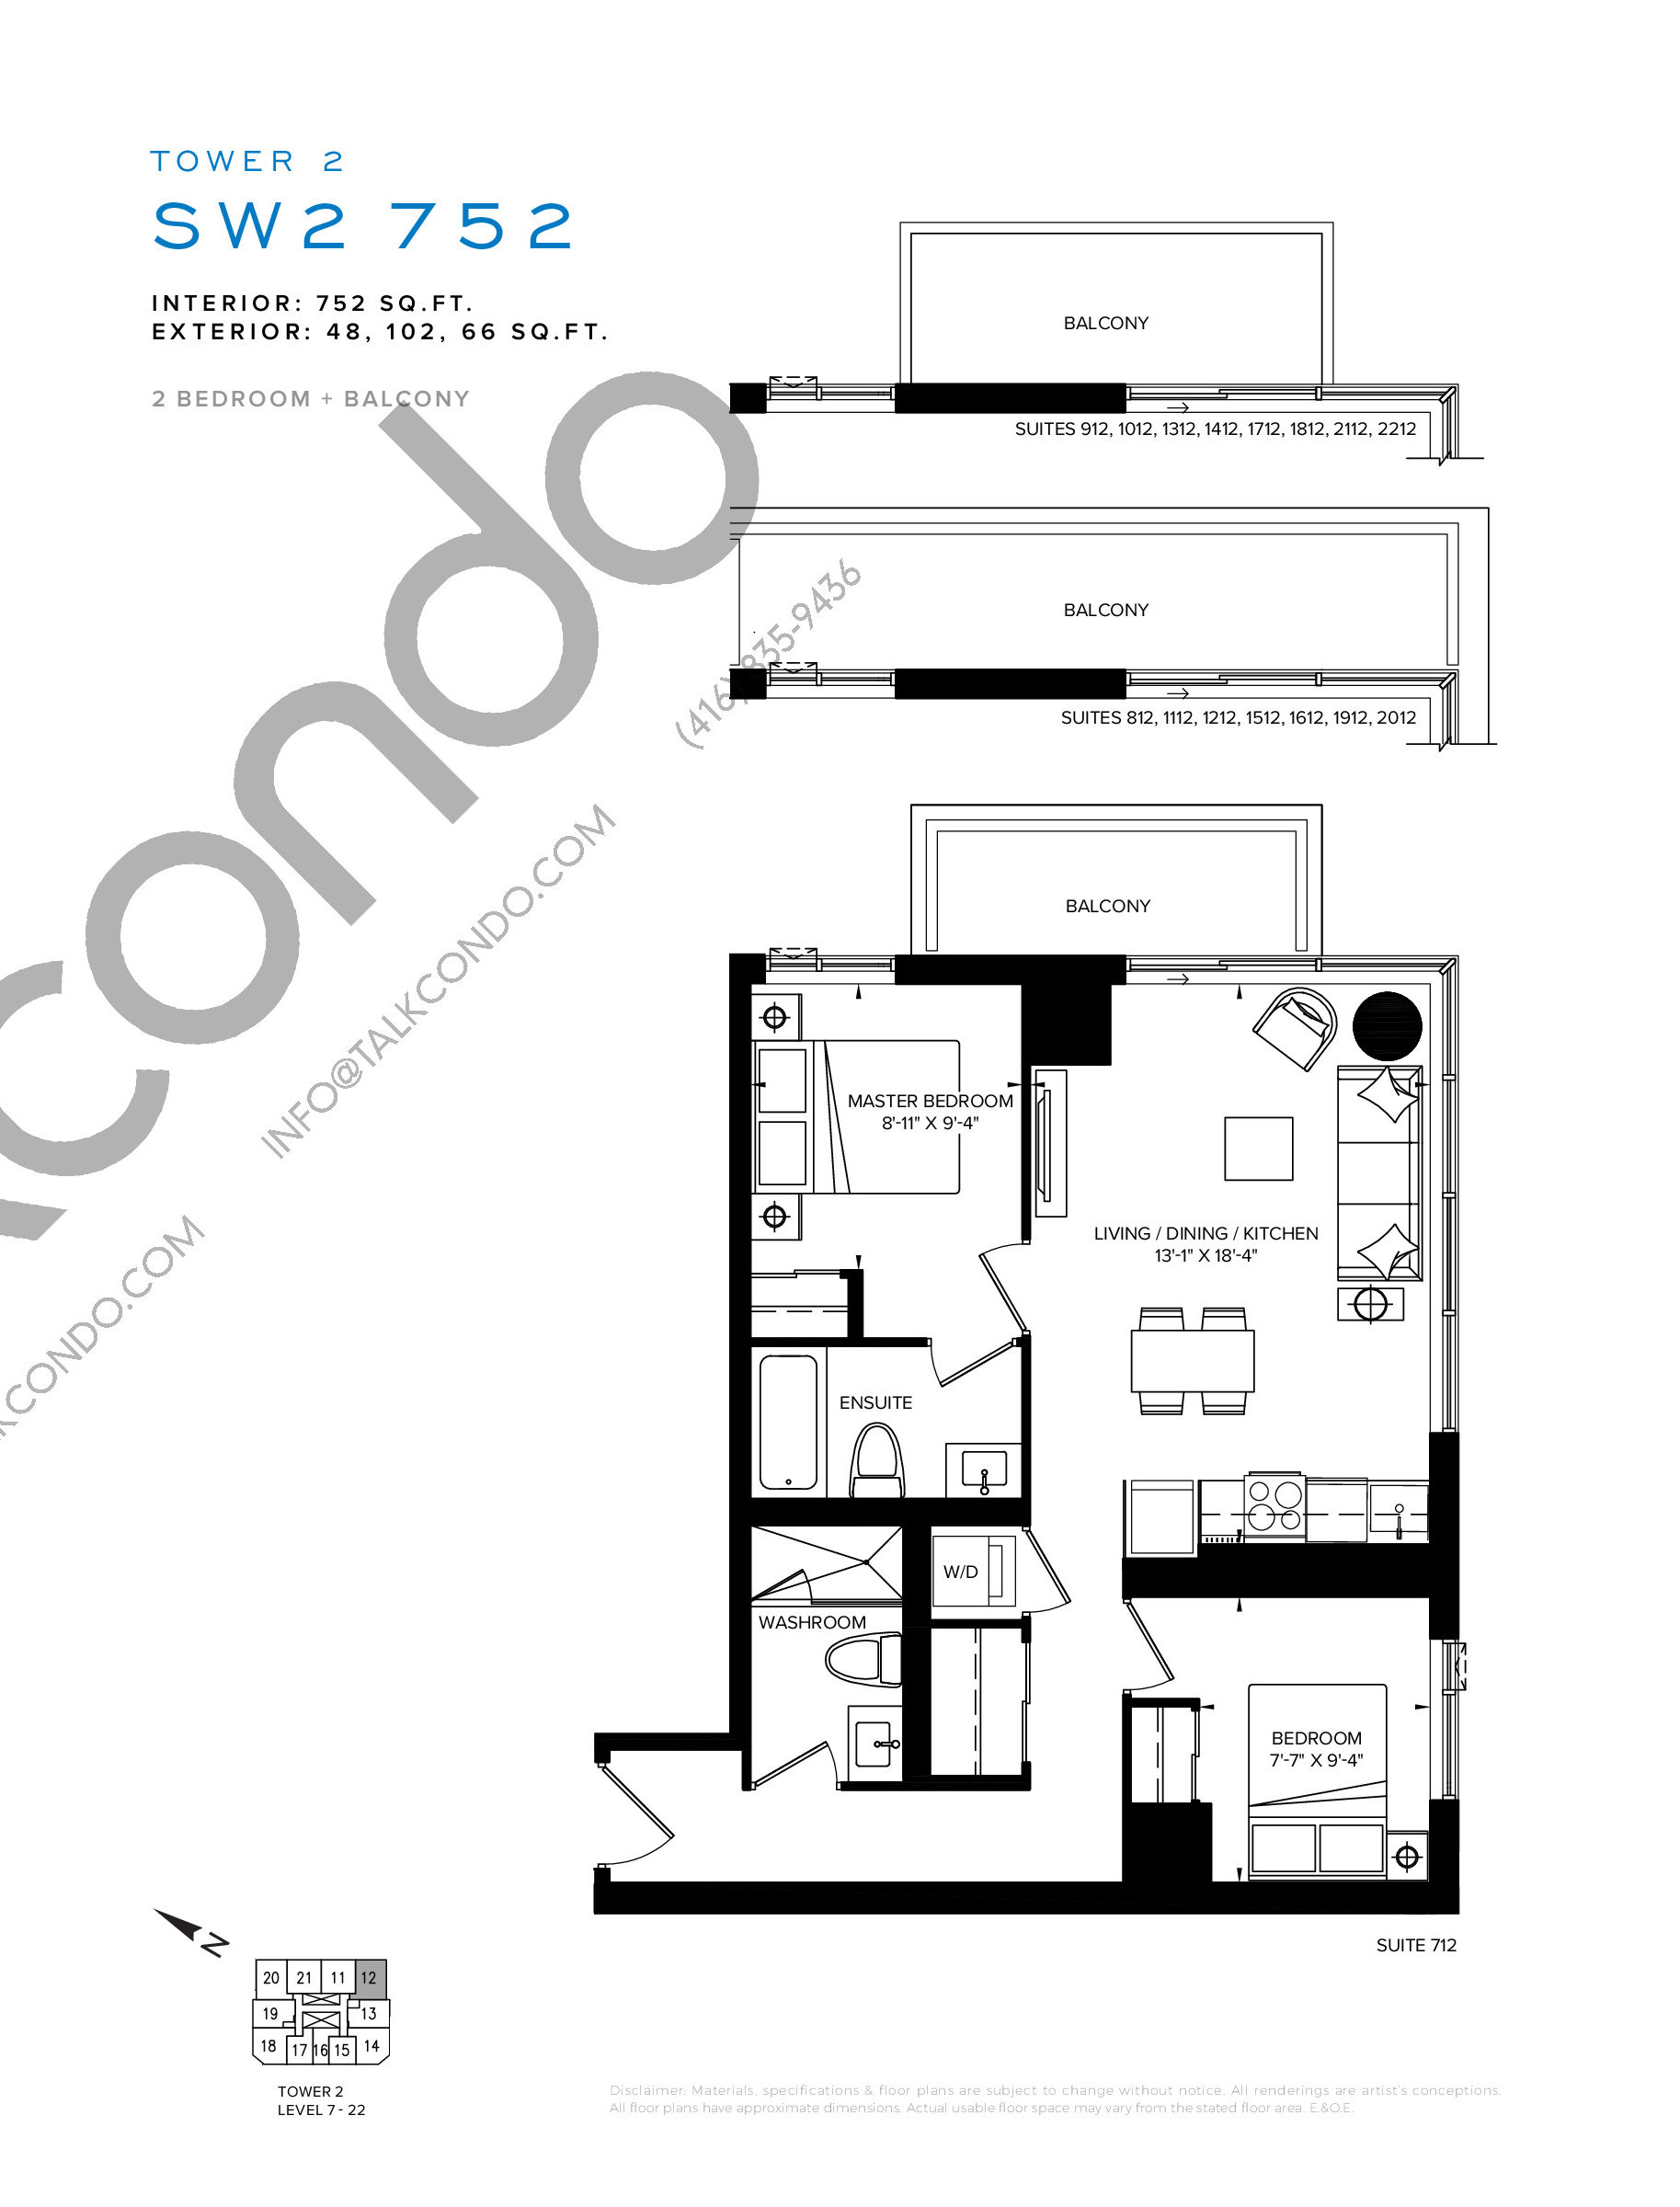 SW2 752 Floor Plan at SXSW Tower 2 Condos (SXSW2) - 752 sq.ft